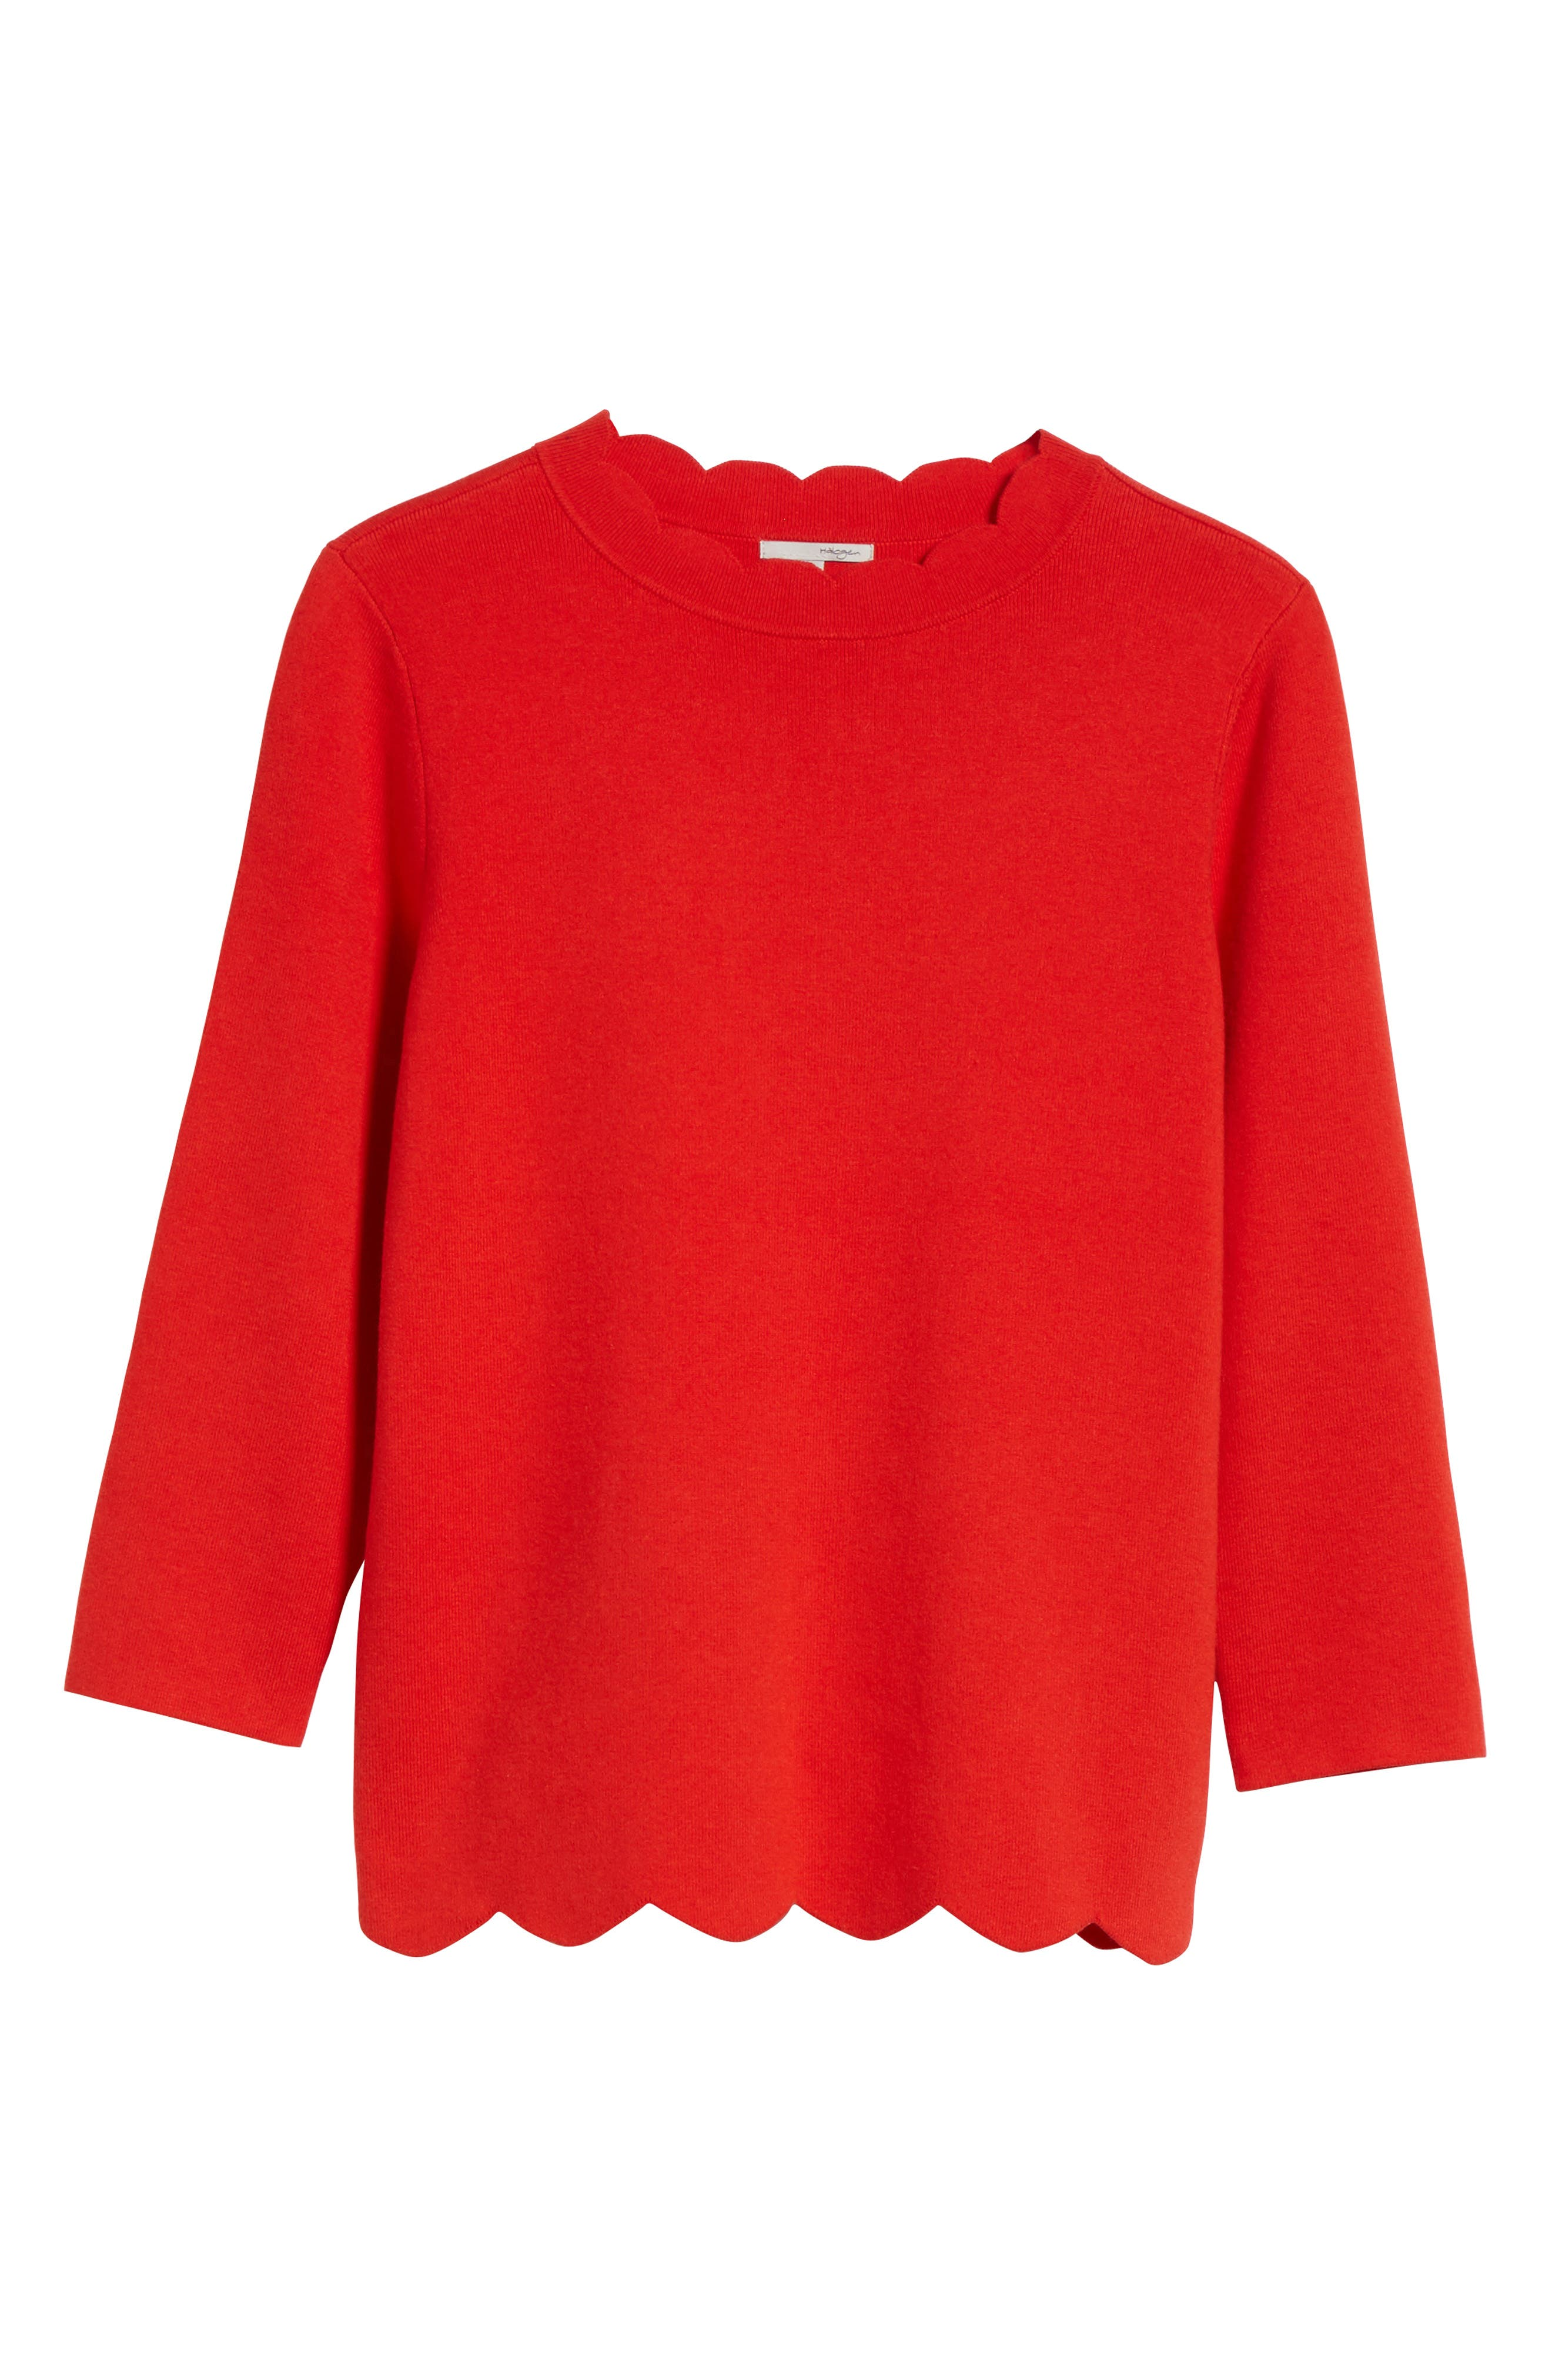 Halogen Scallop Edge Sweater,                             Alternate thumbnail 63, color,